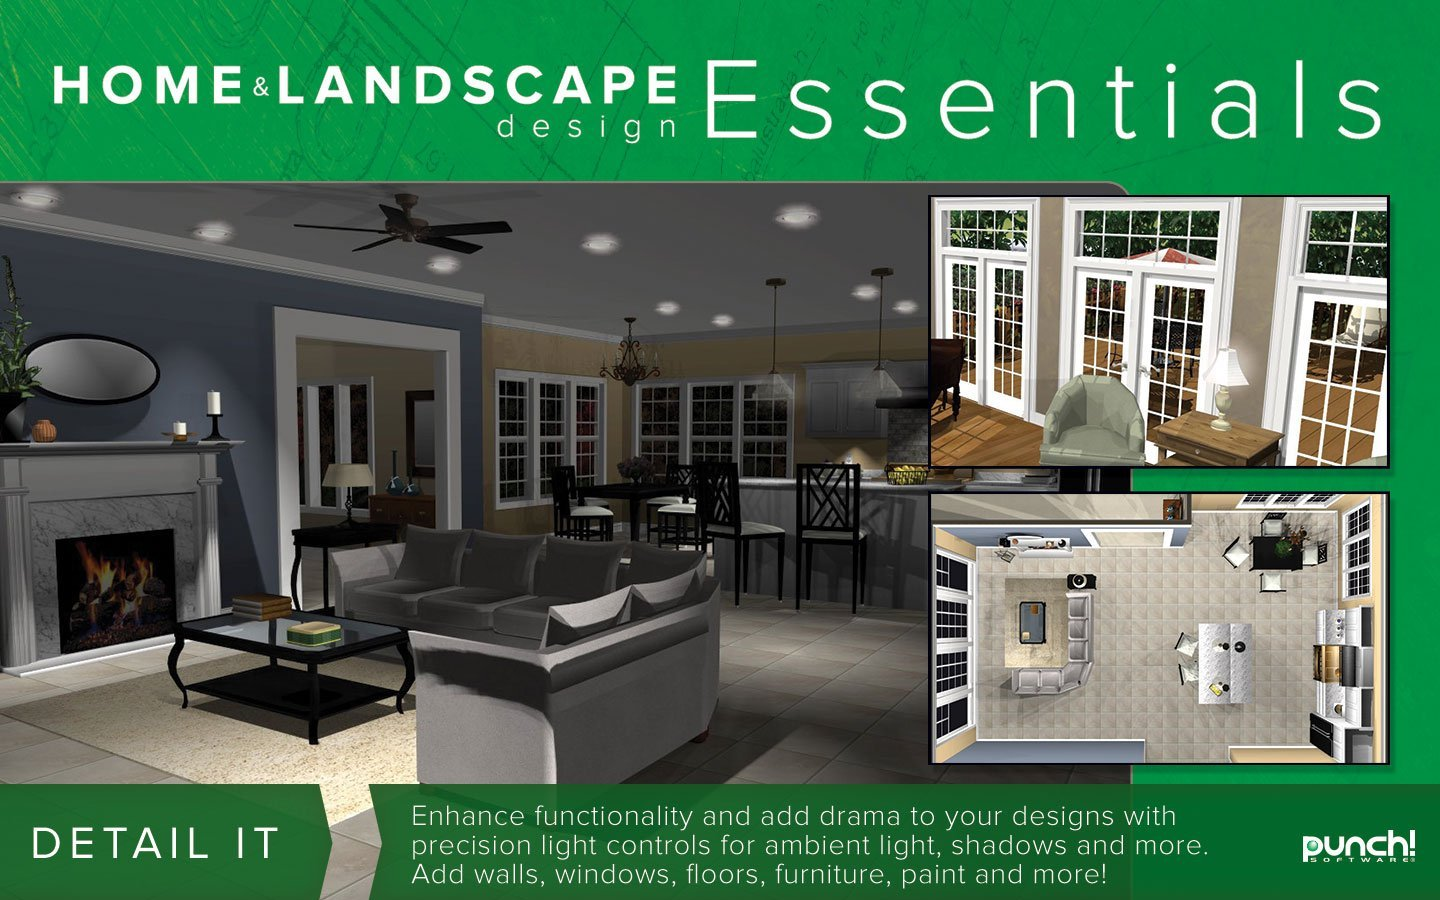 Punch home landscape design essentials v18 download for Landscape design computer programs